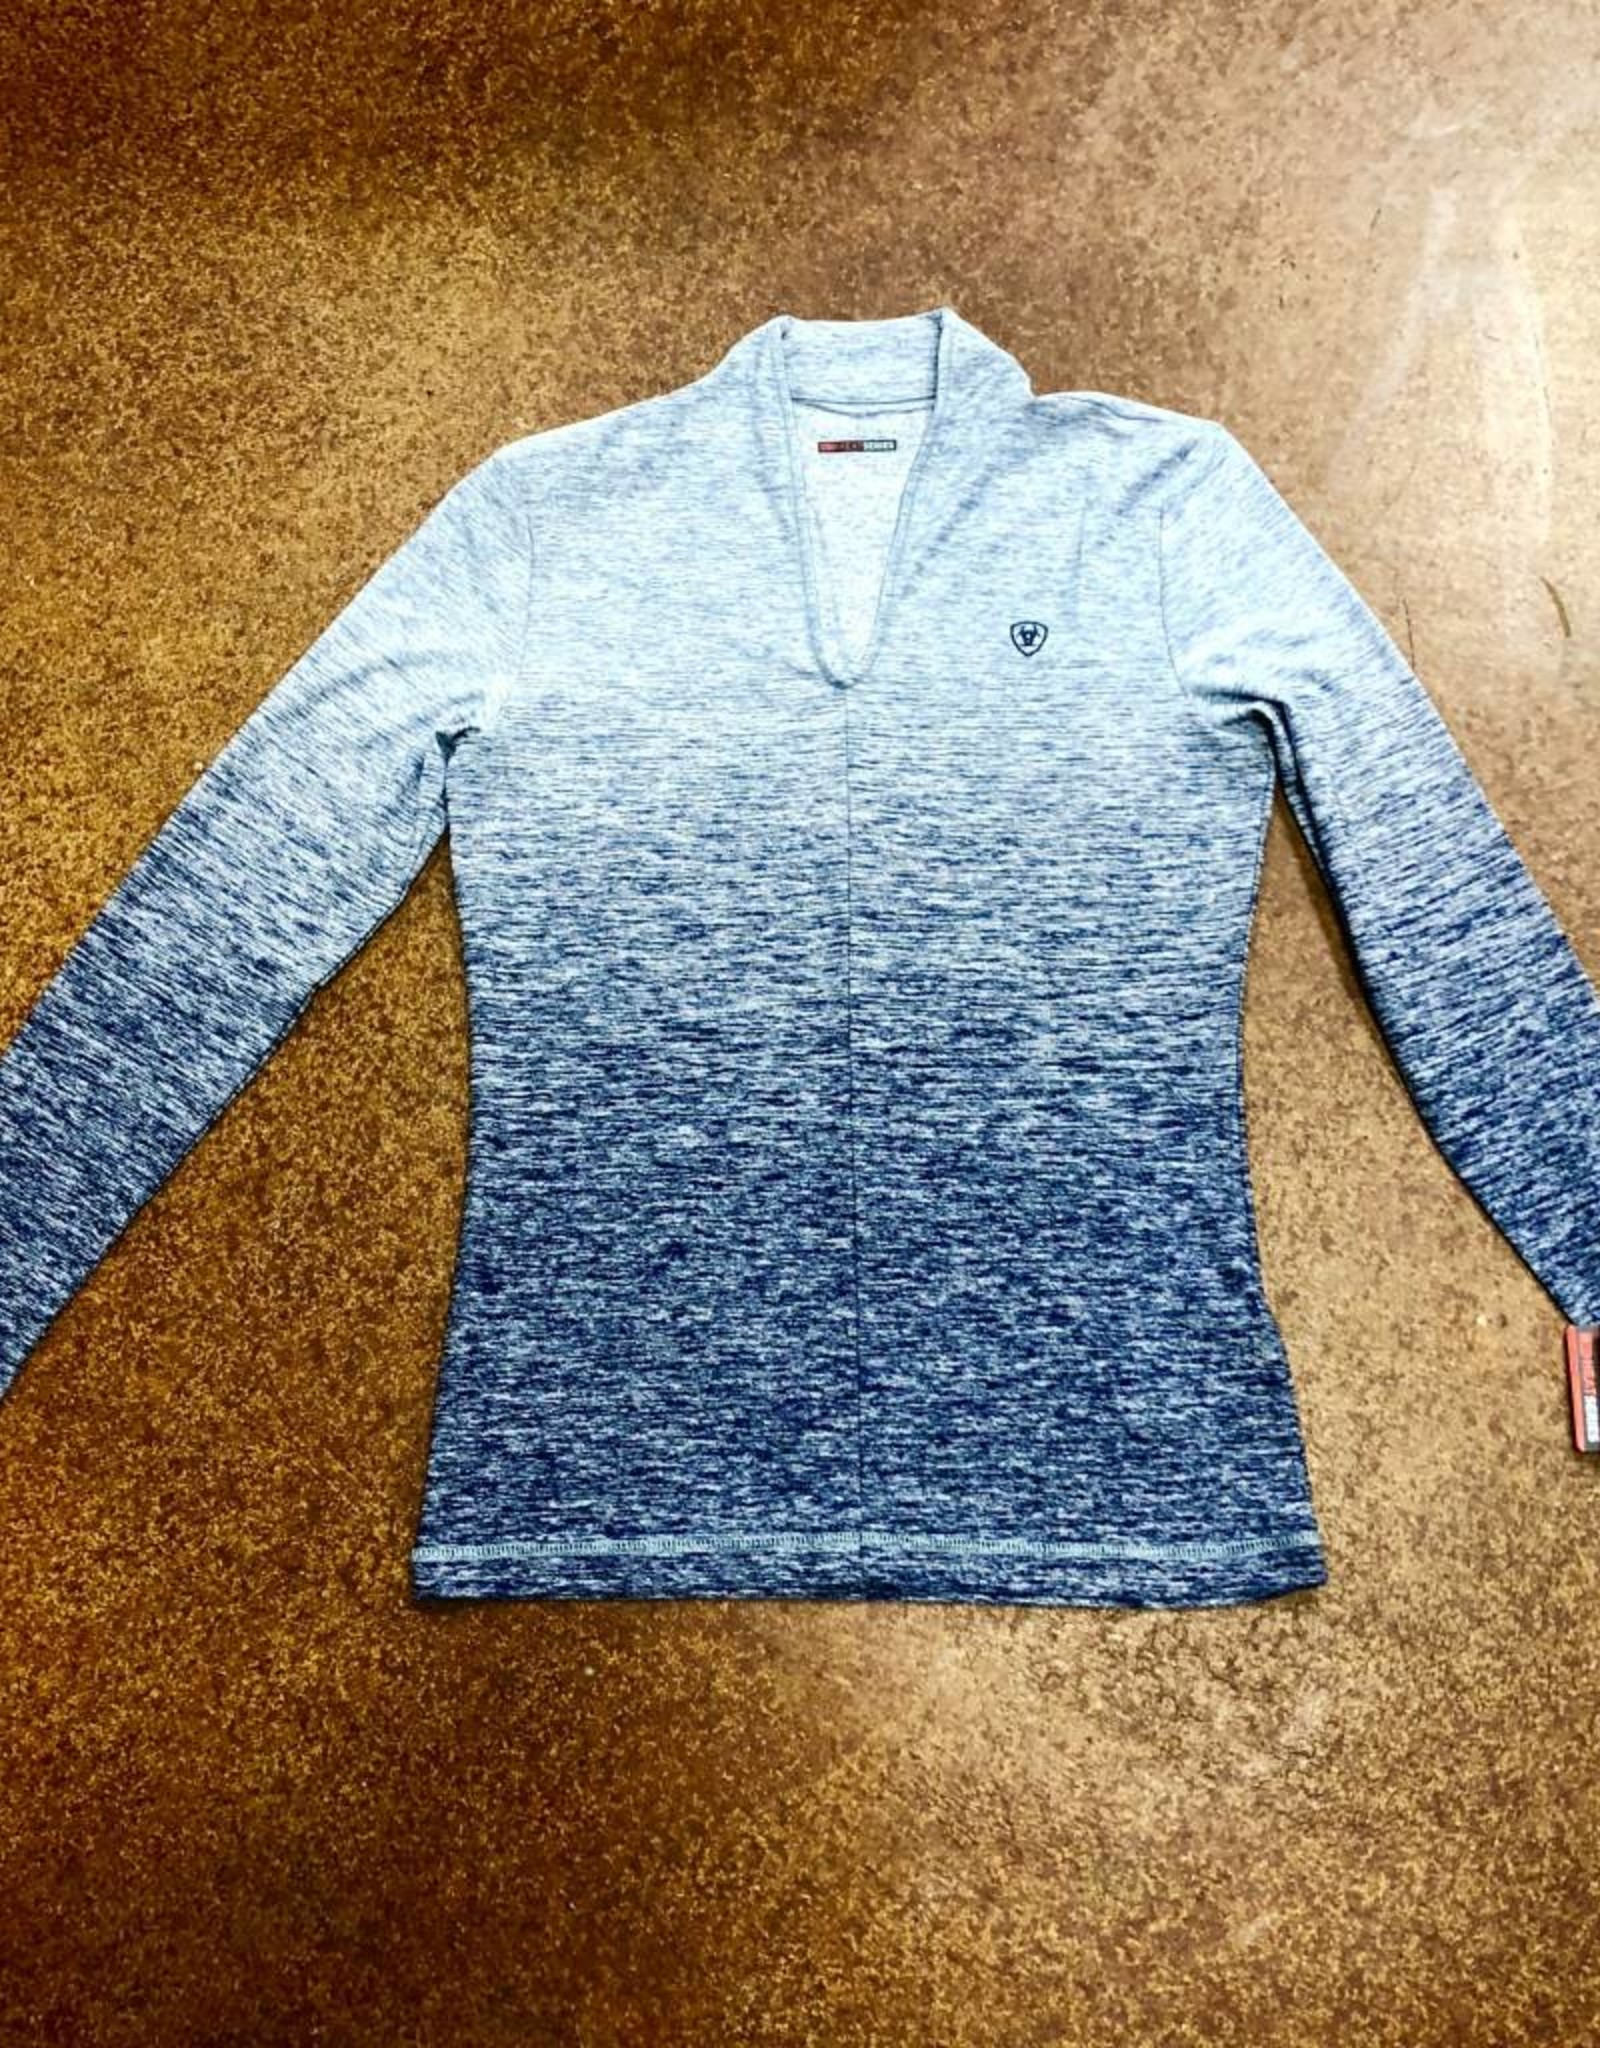 ARIAT WMS NAVY BASELAYER NAVY OMBRE SHIRT TEK MOISTURE WICKING